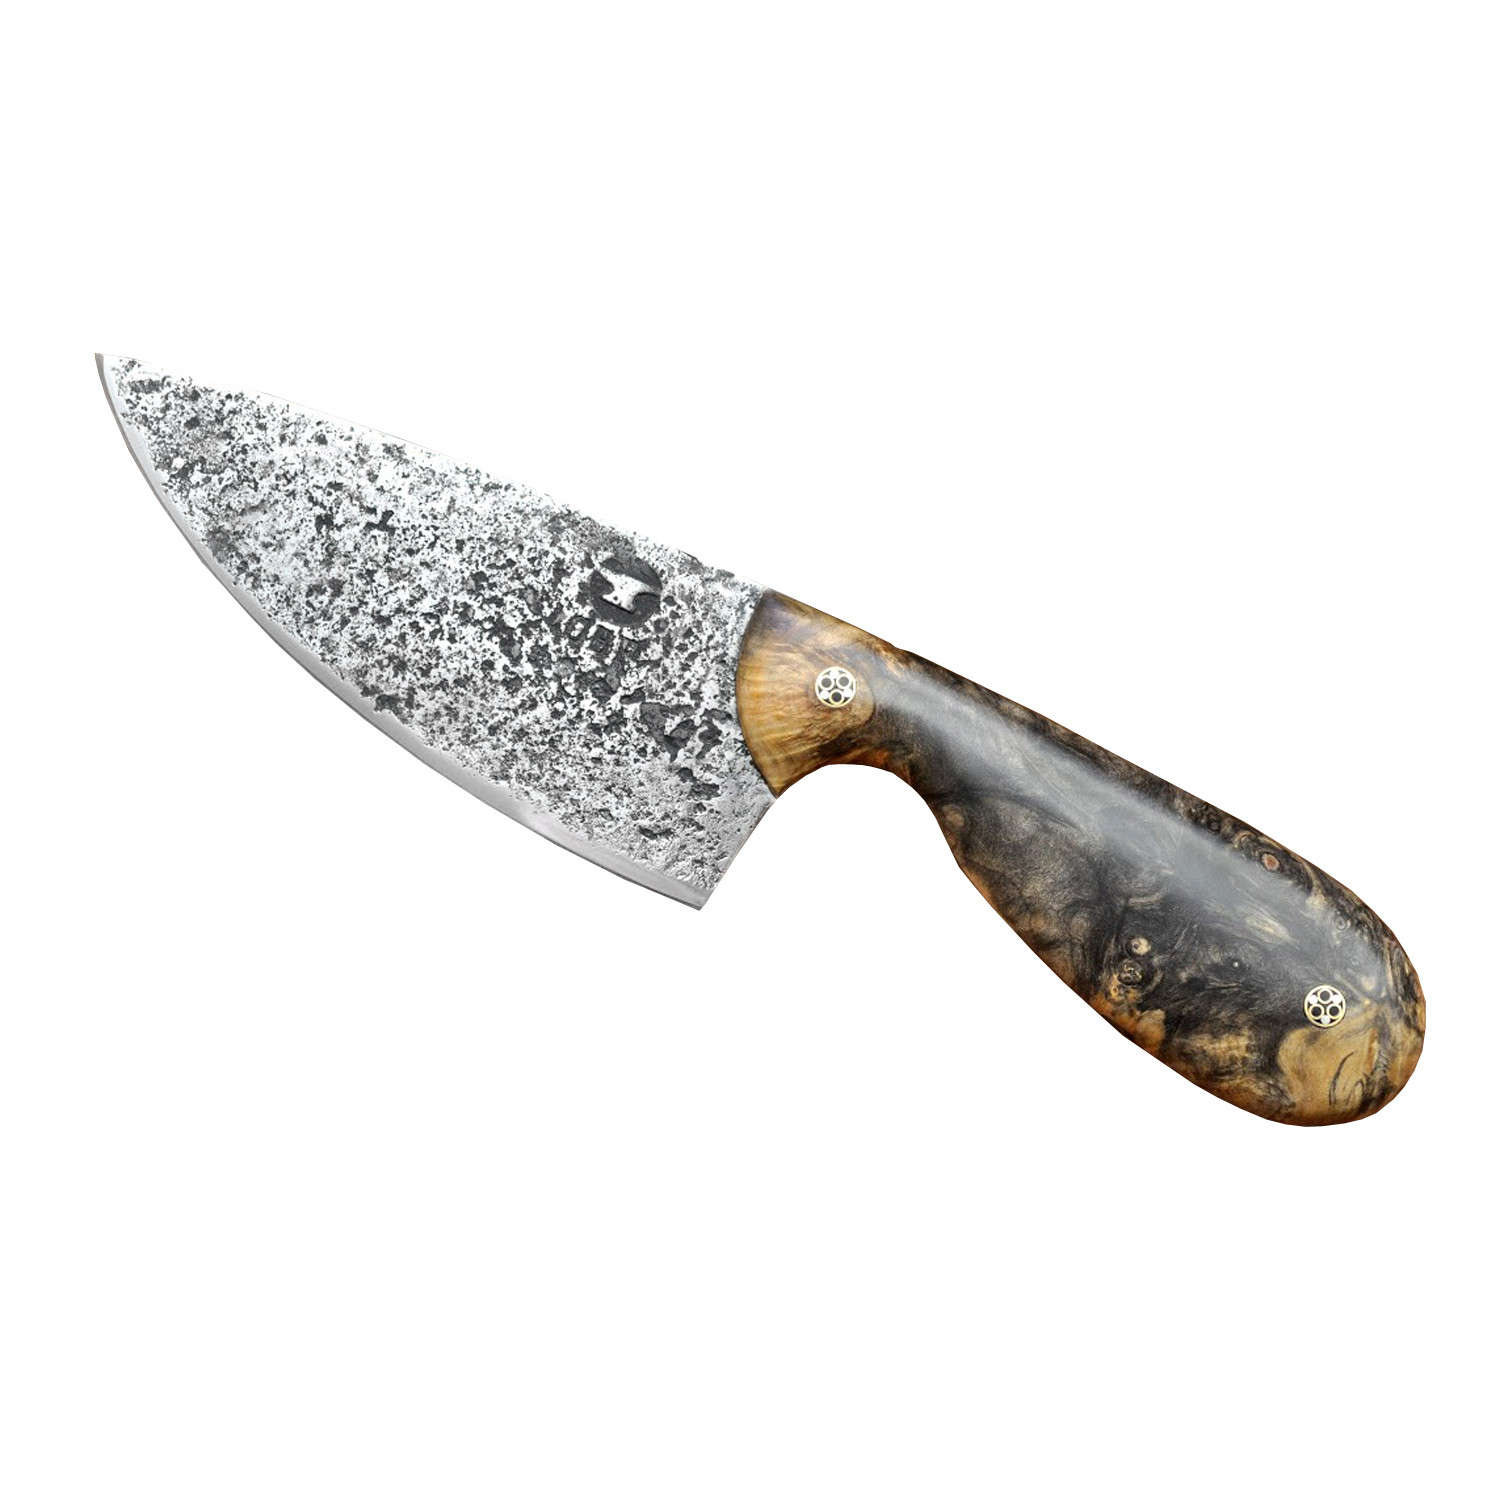 Small chef knife spalted maple wood handle oaks bottom